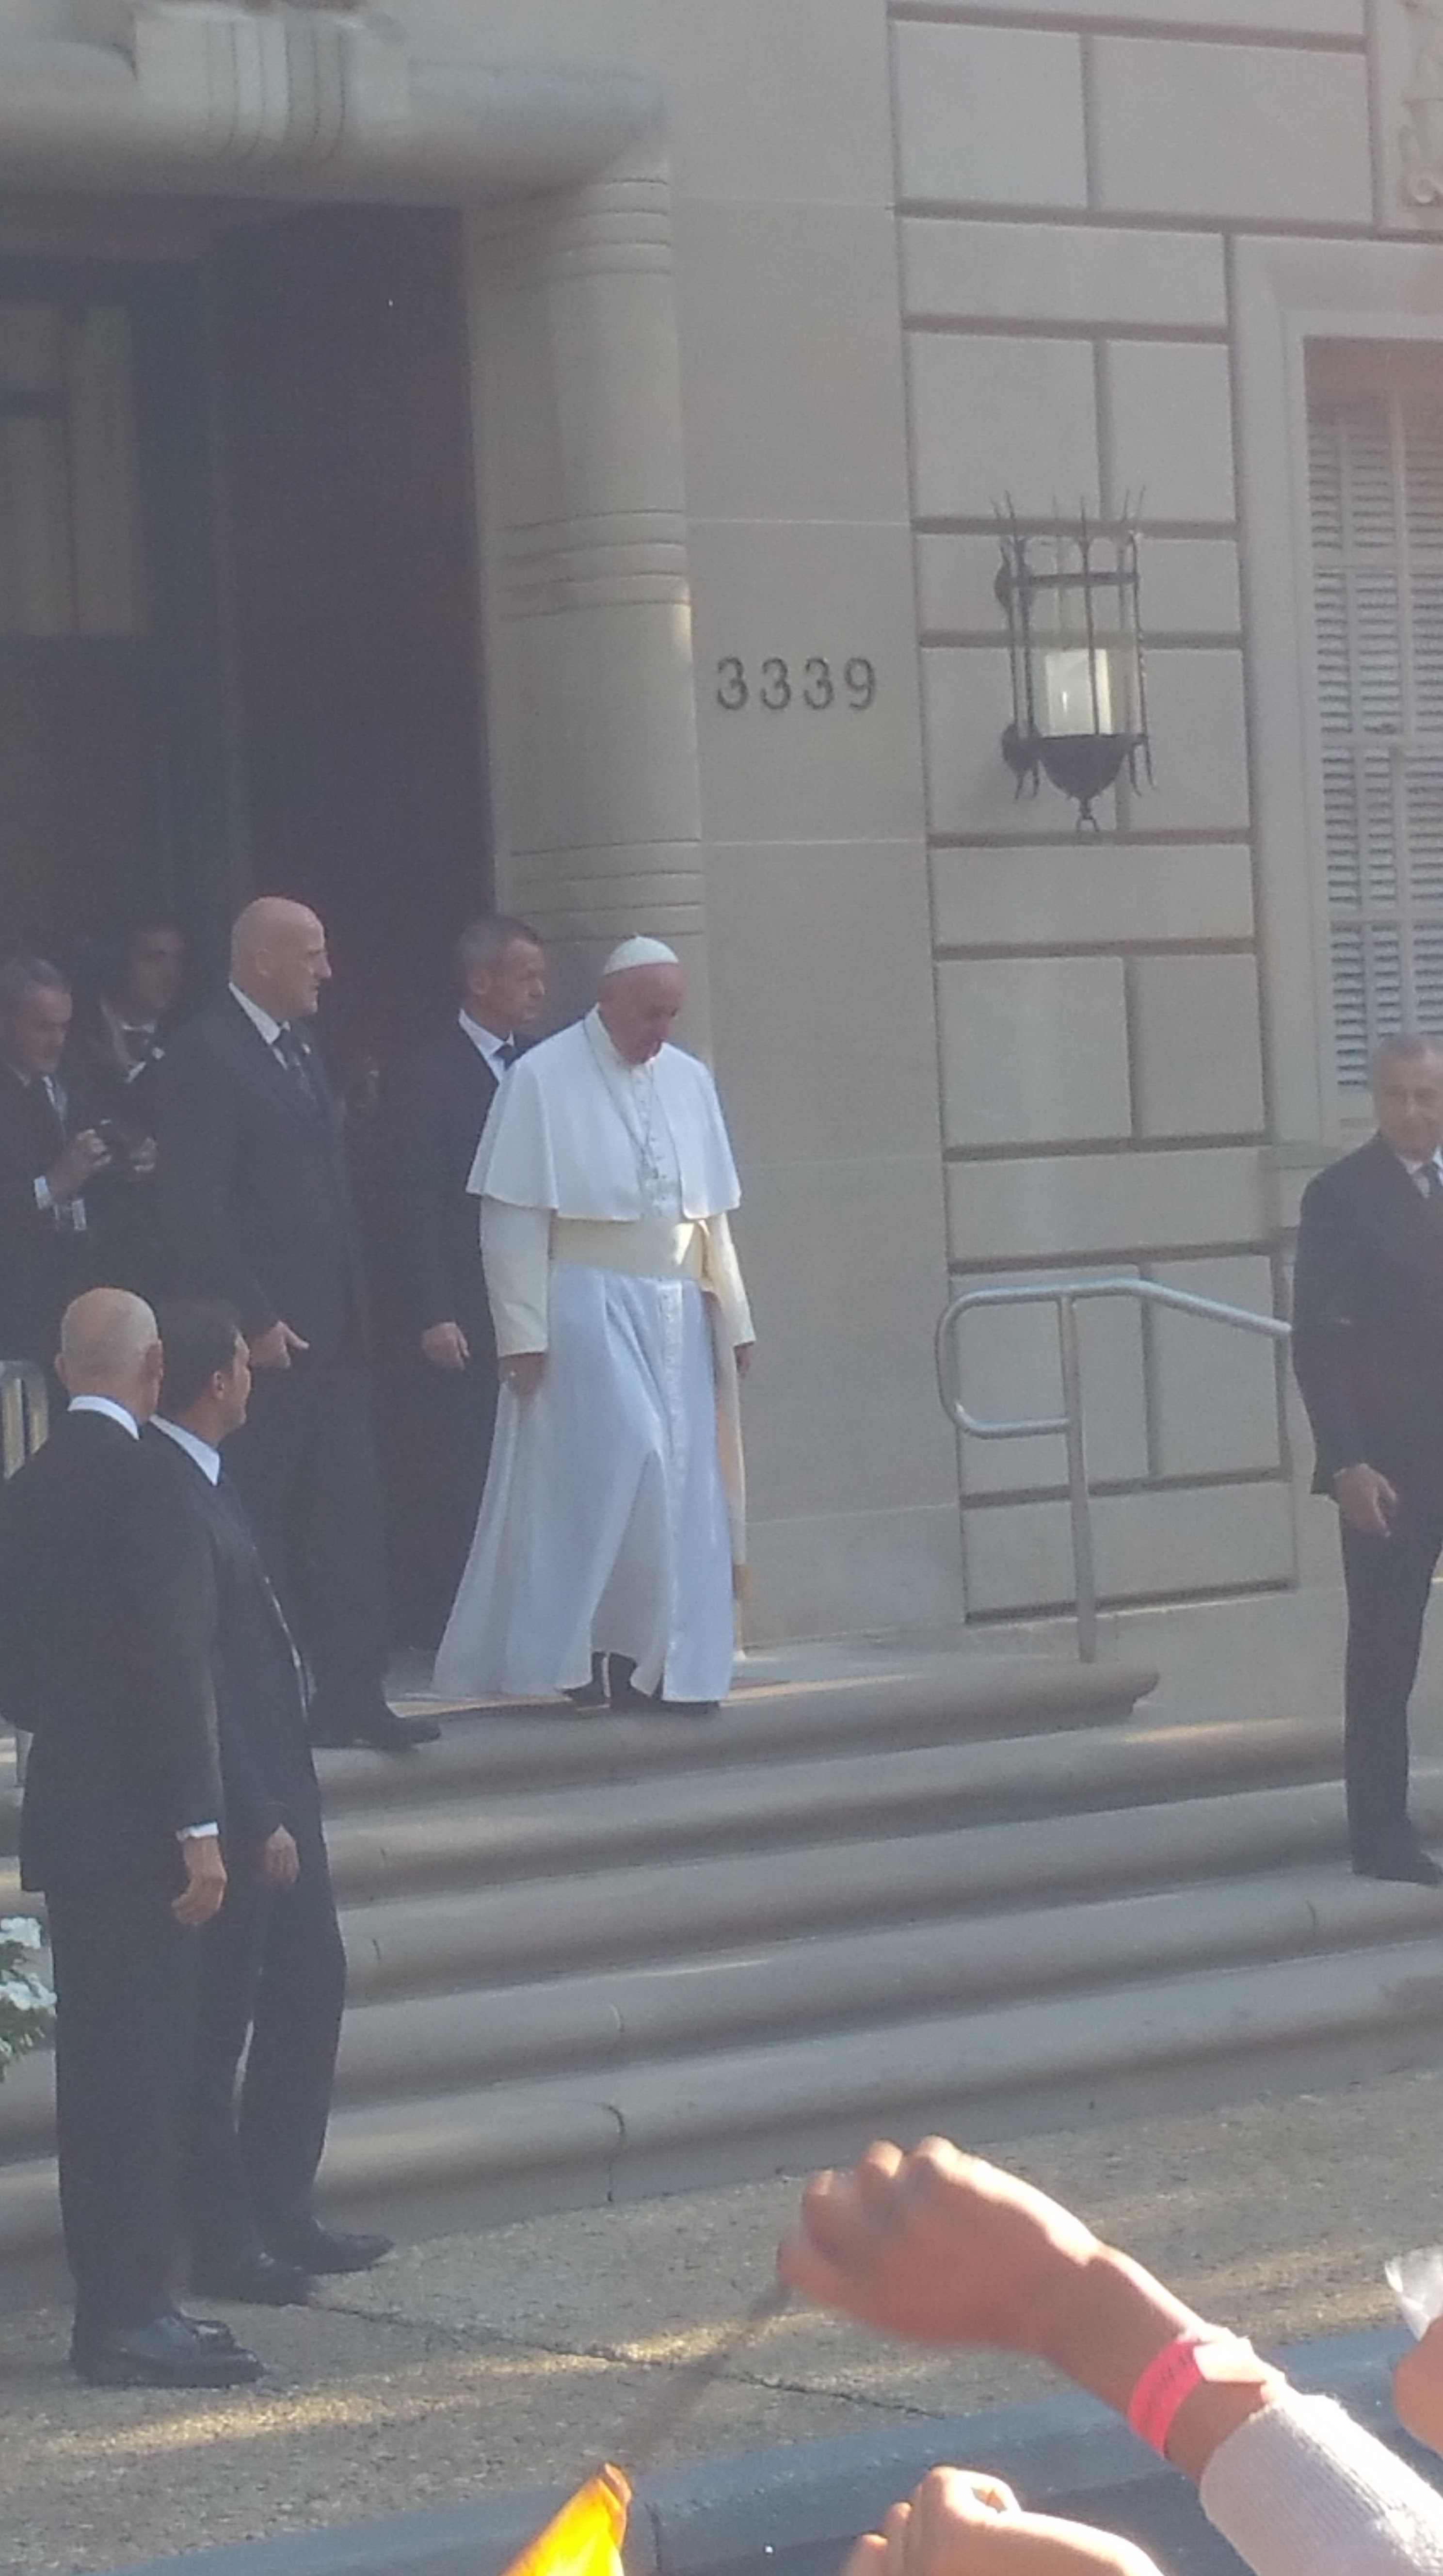 Pope Francis, DC, Catholic, church, peace, life, lifesjourney, inspirational, joy, PopeinDC, walkwithfrancis